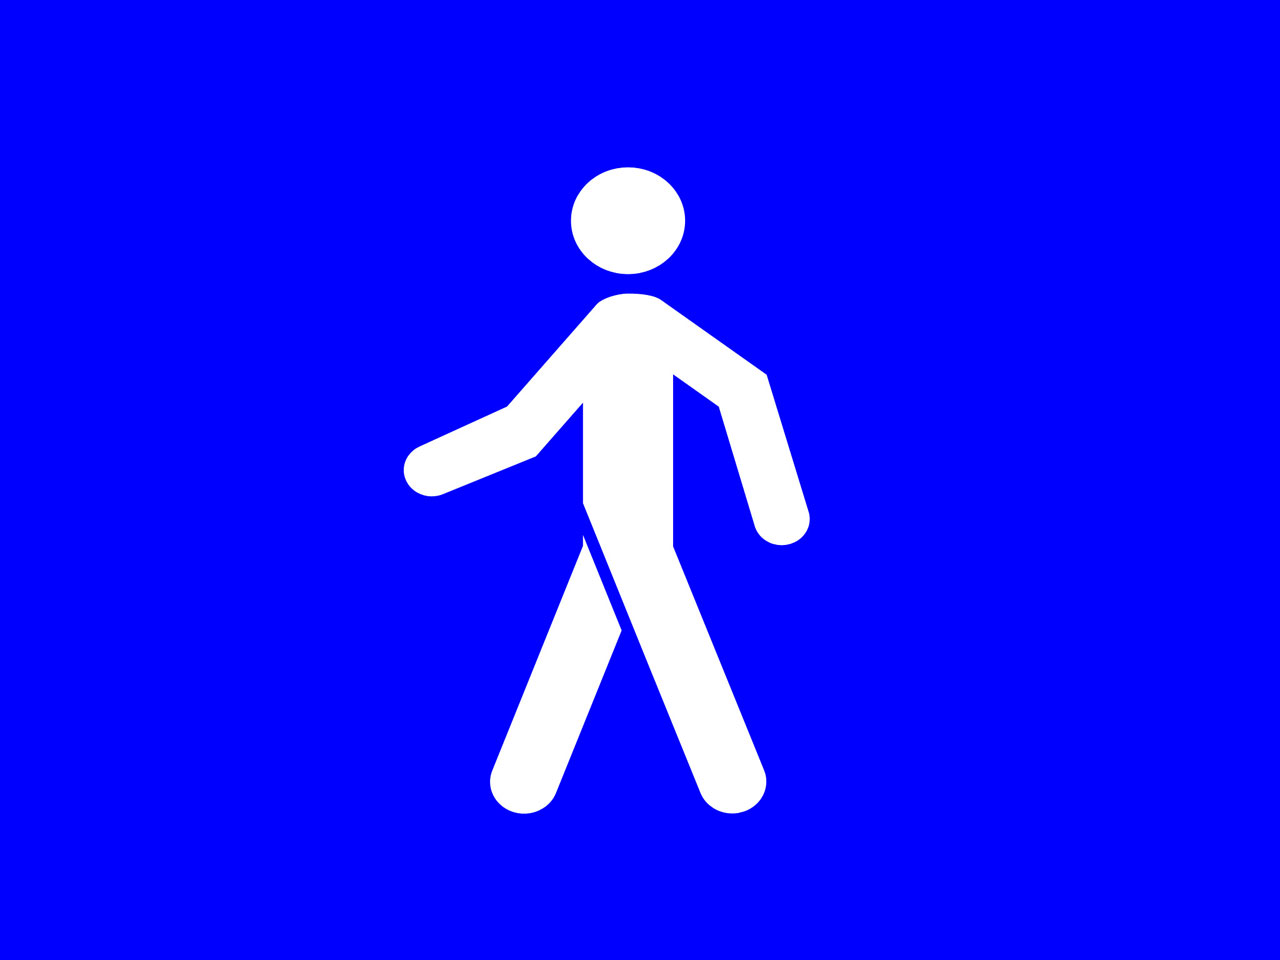 Calls For Signs Warning Drivers Of Pedestrians And